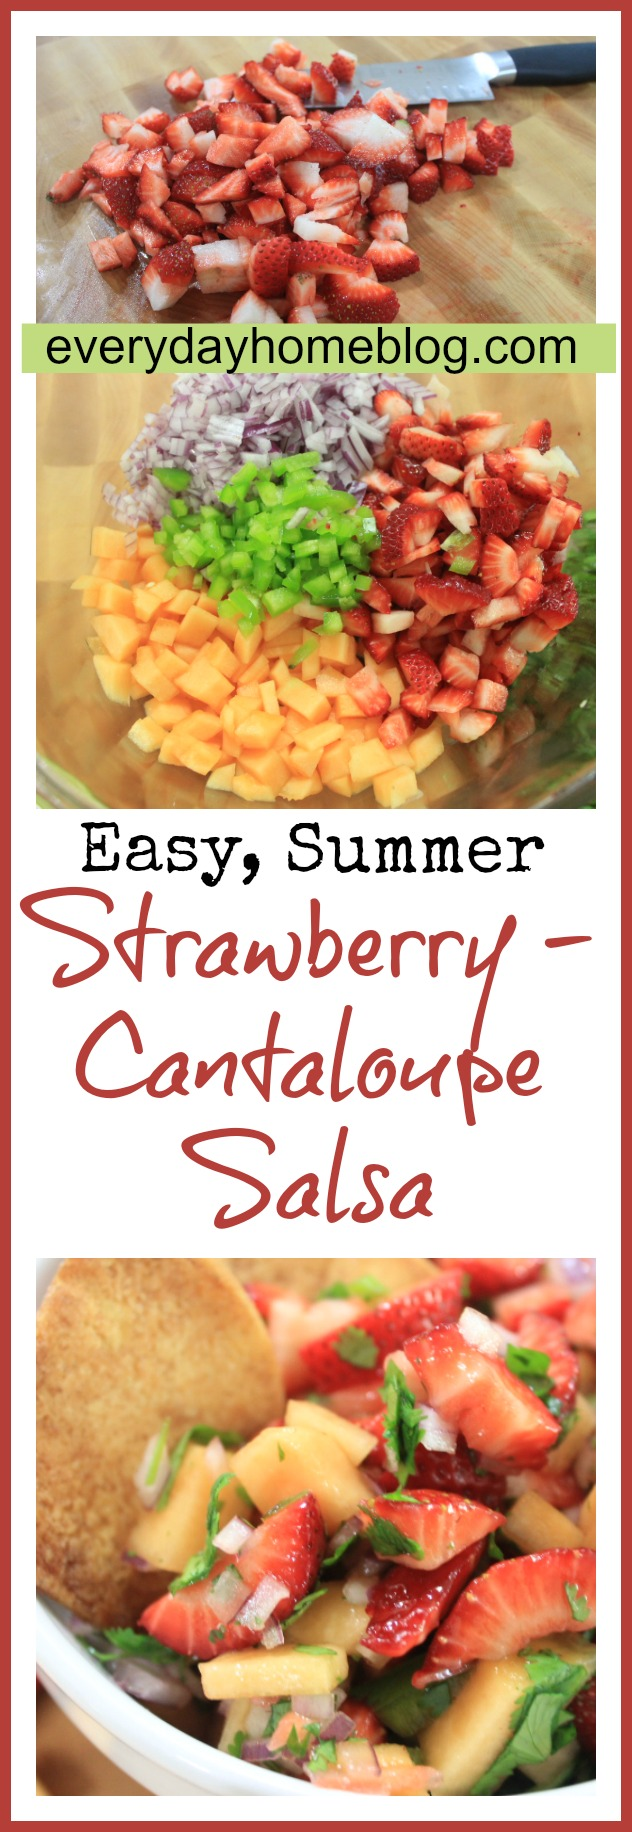 Strawberry-Cantaloupe Summer Salsa by The Everyday Home / www.evevrydayhomeblog.com